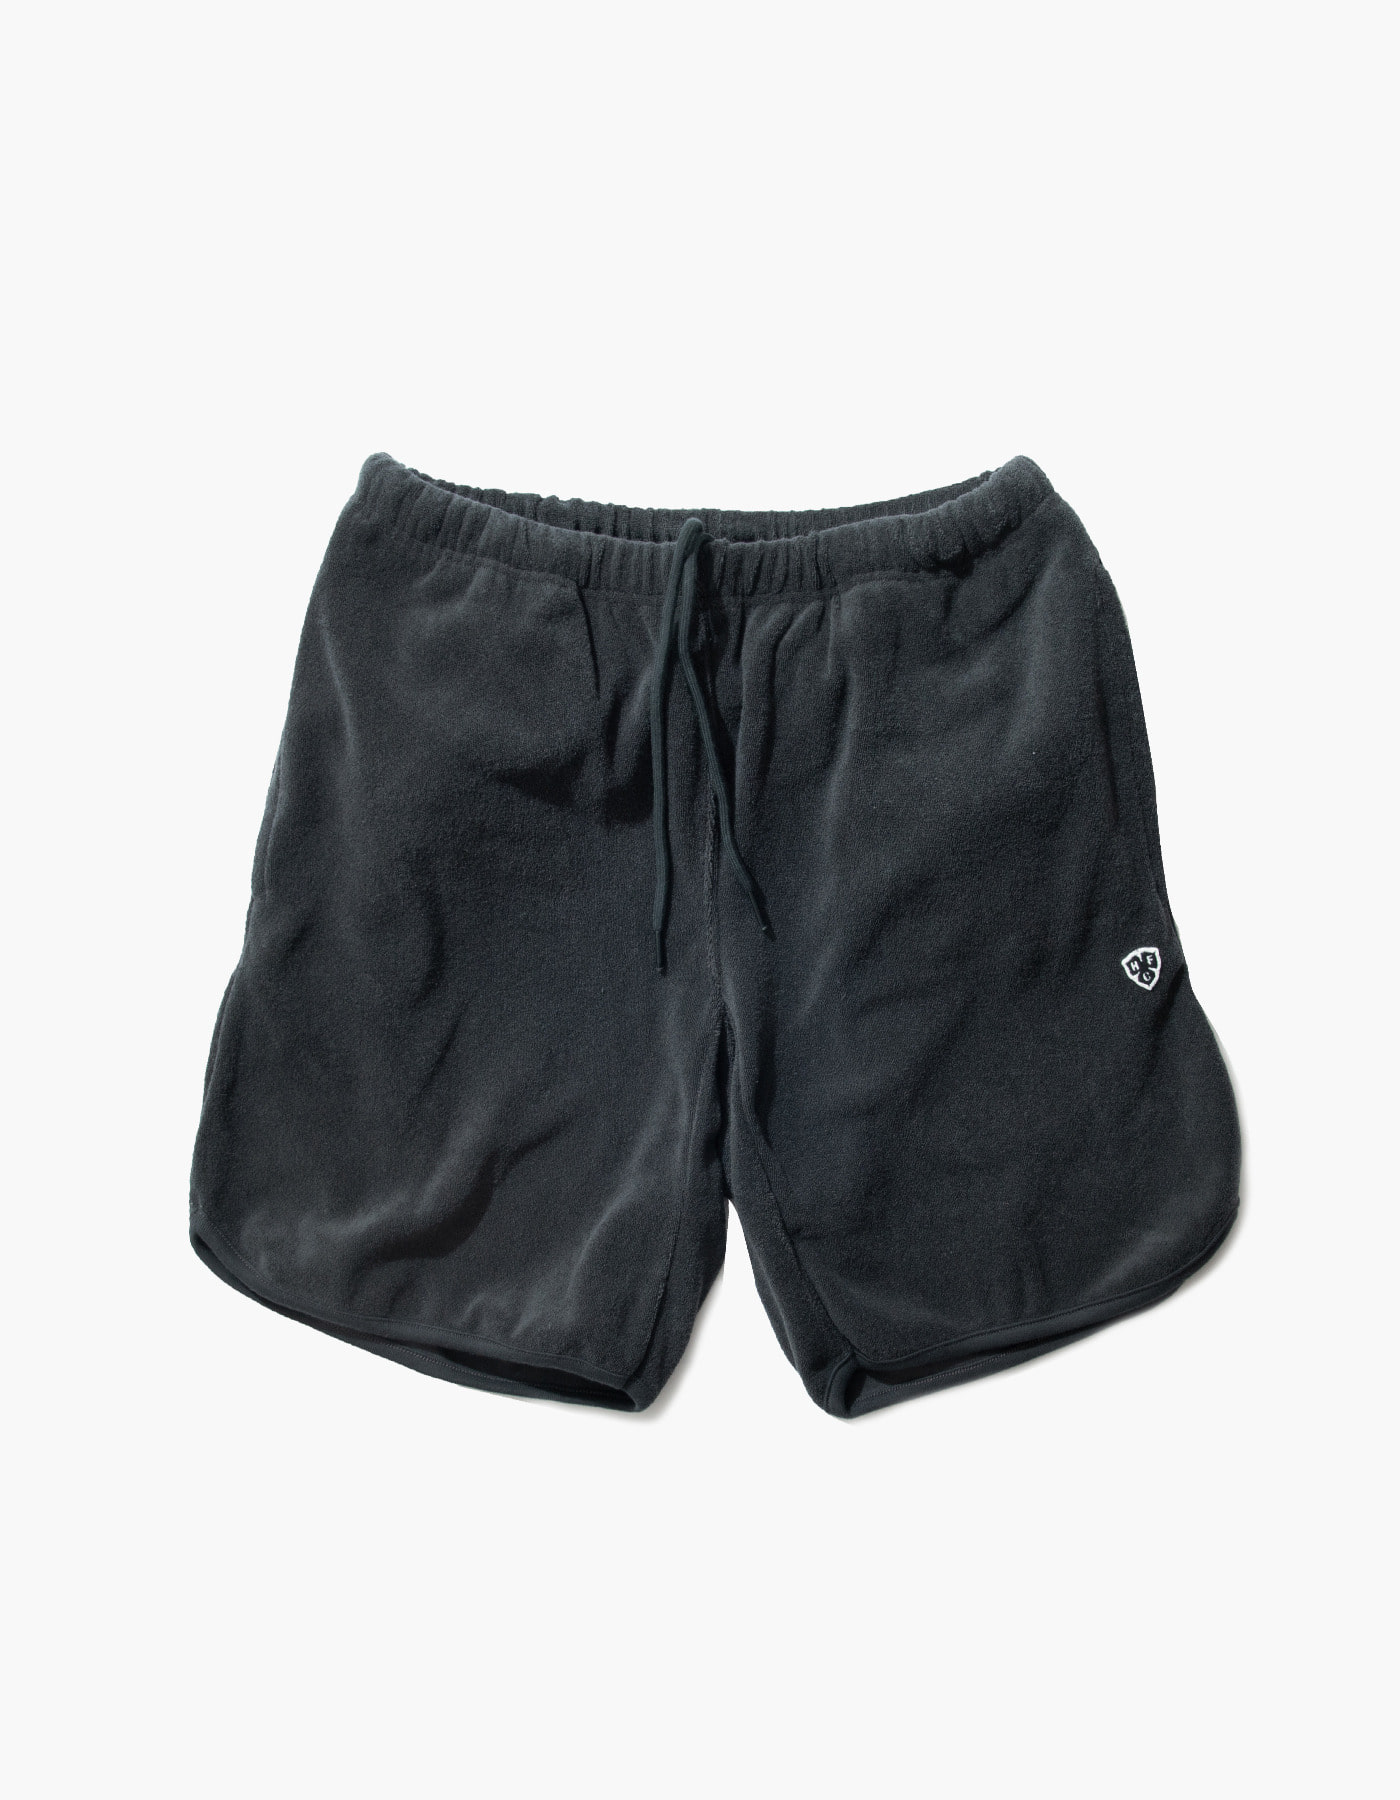 HFC CREST TOWEL SHORTS / CHARCOAL